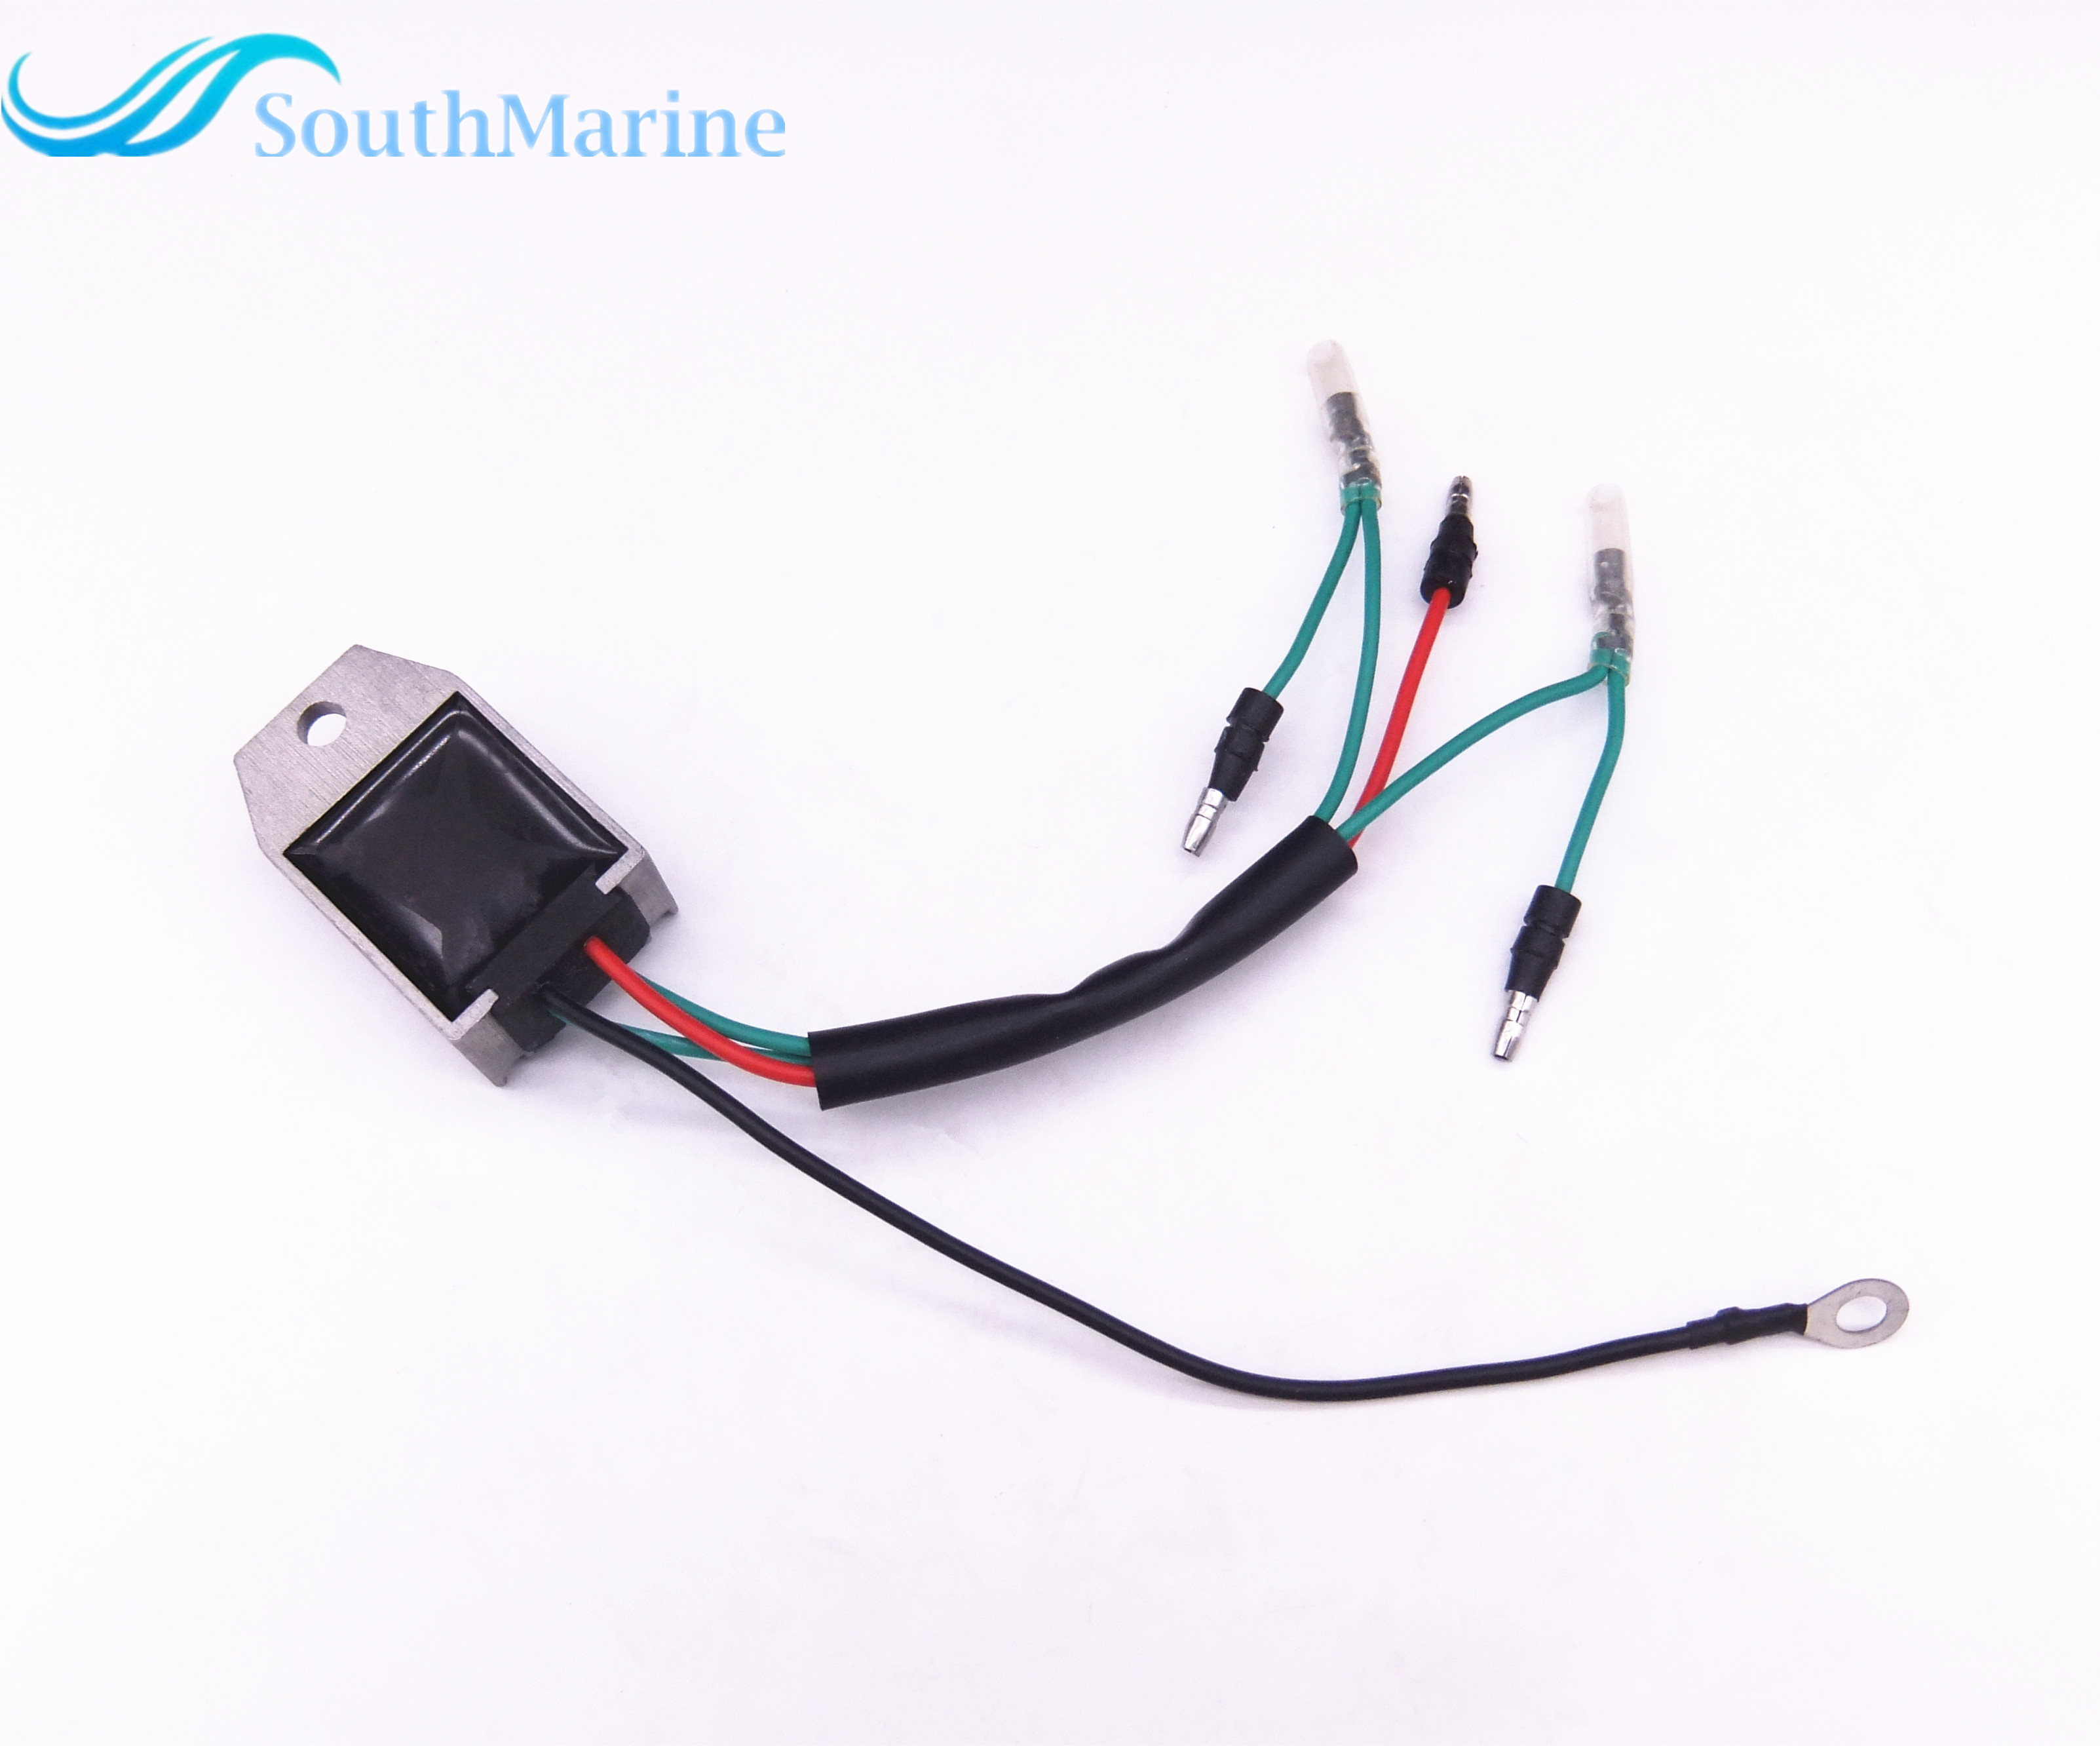 medium resolution of boat motor rectifier regulator assy 6j8 81960 00 for yamaha outboard motors in boat engine from automobiles motorcycles on aliexpress com alibaba